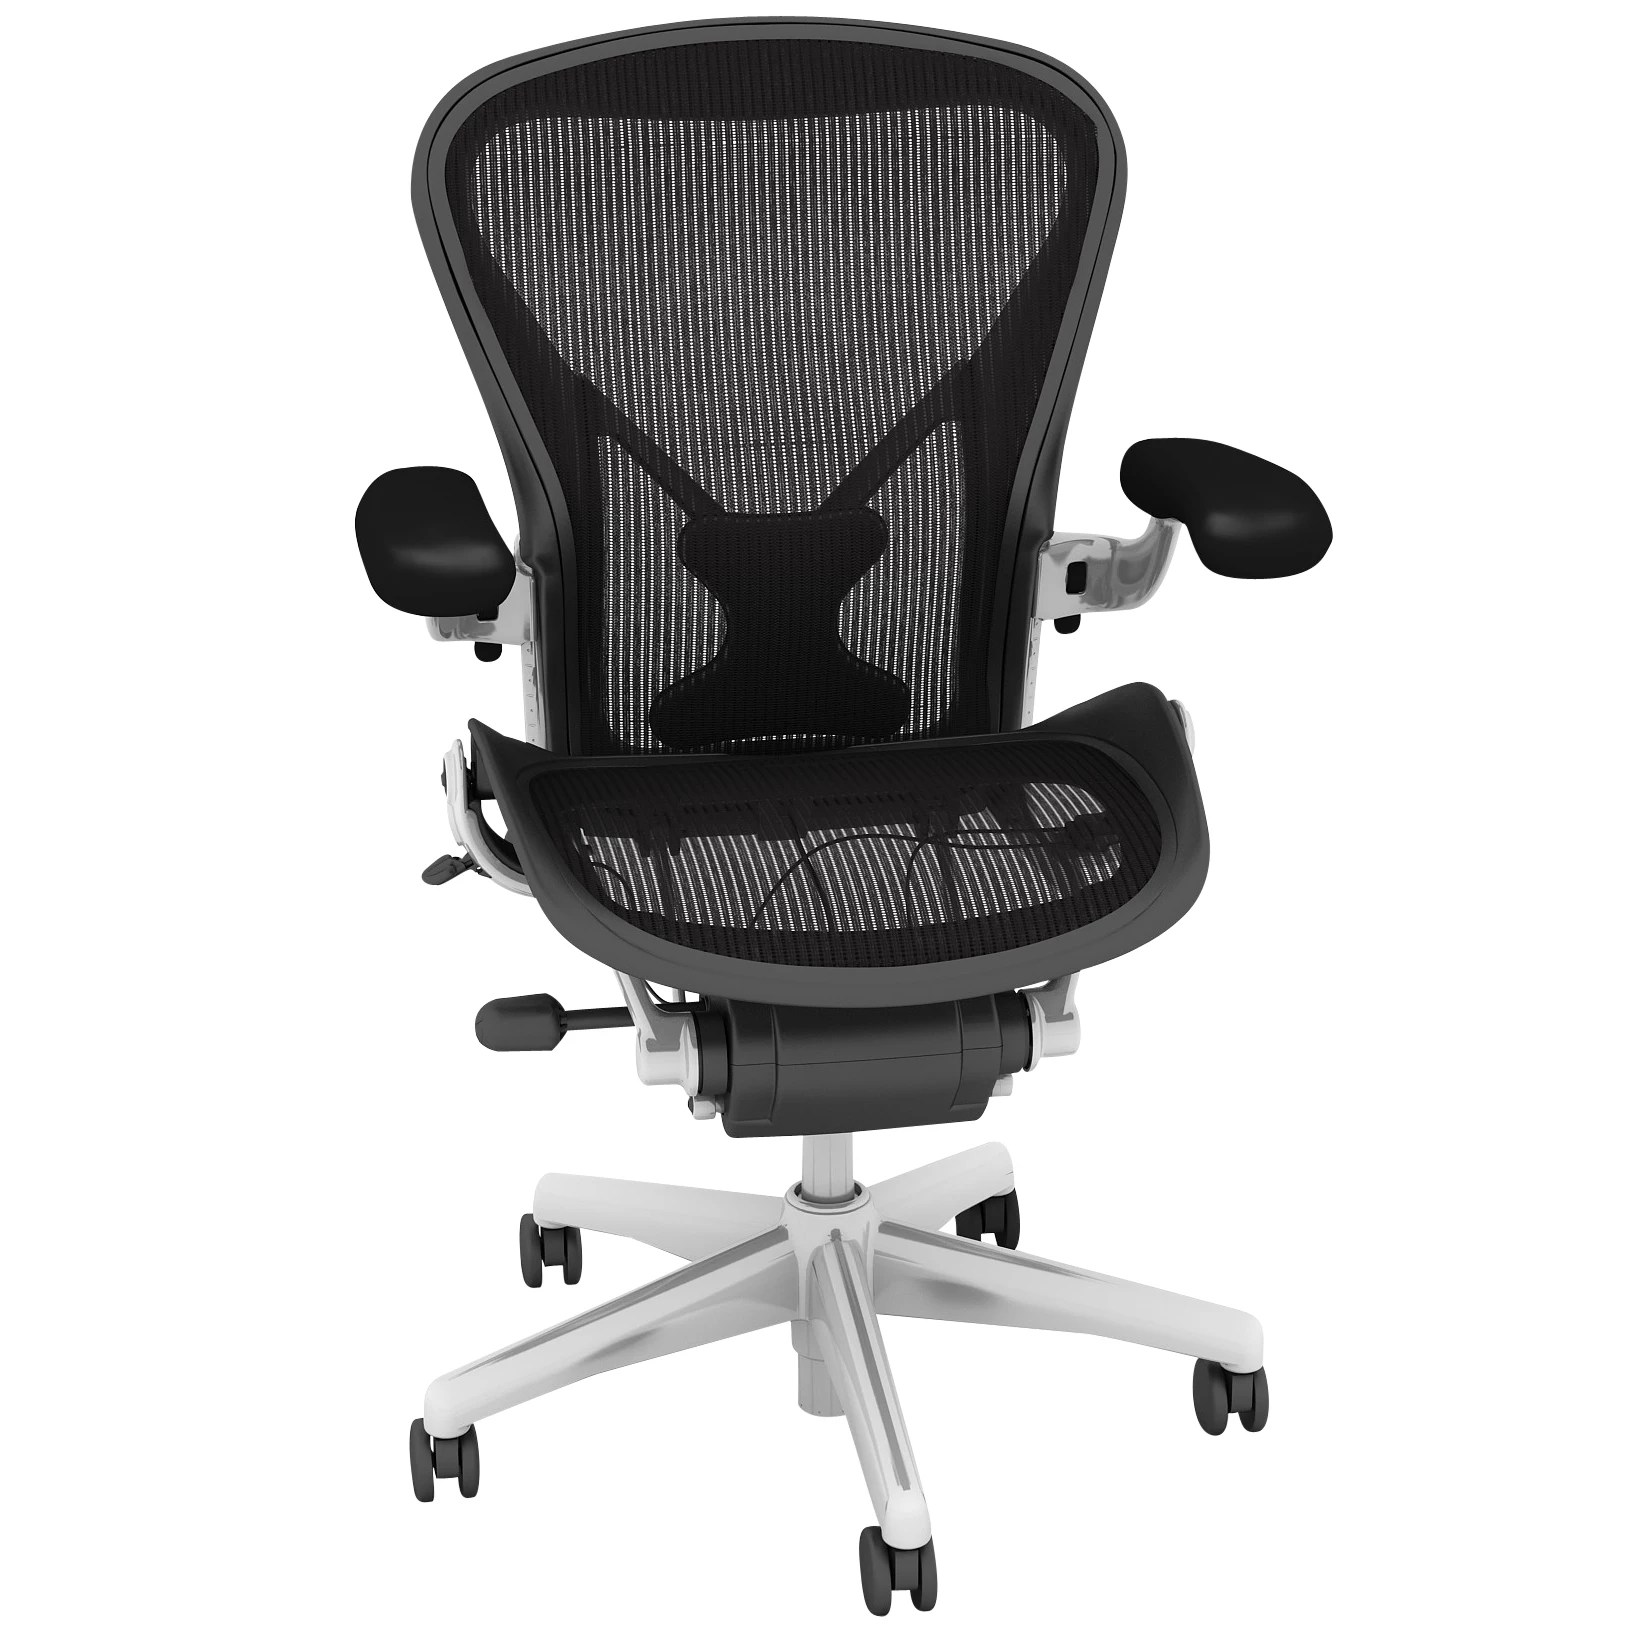 posture promoting chair accora accessories herman miller classic aeron office polished octer